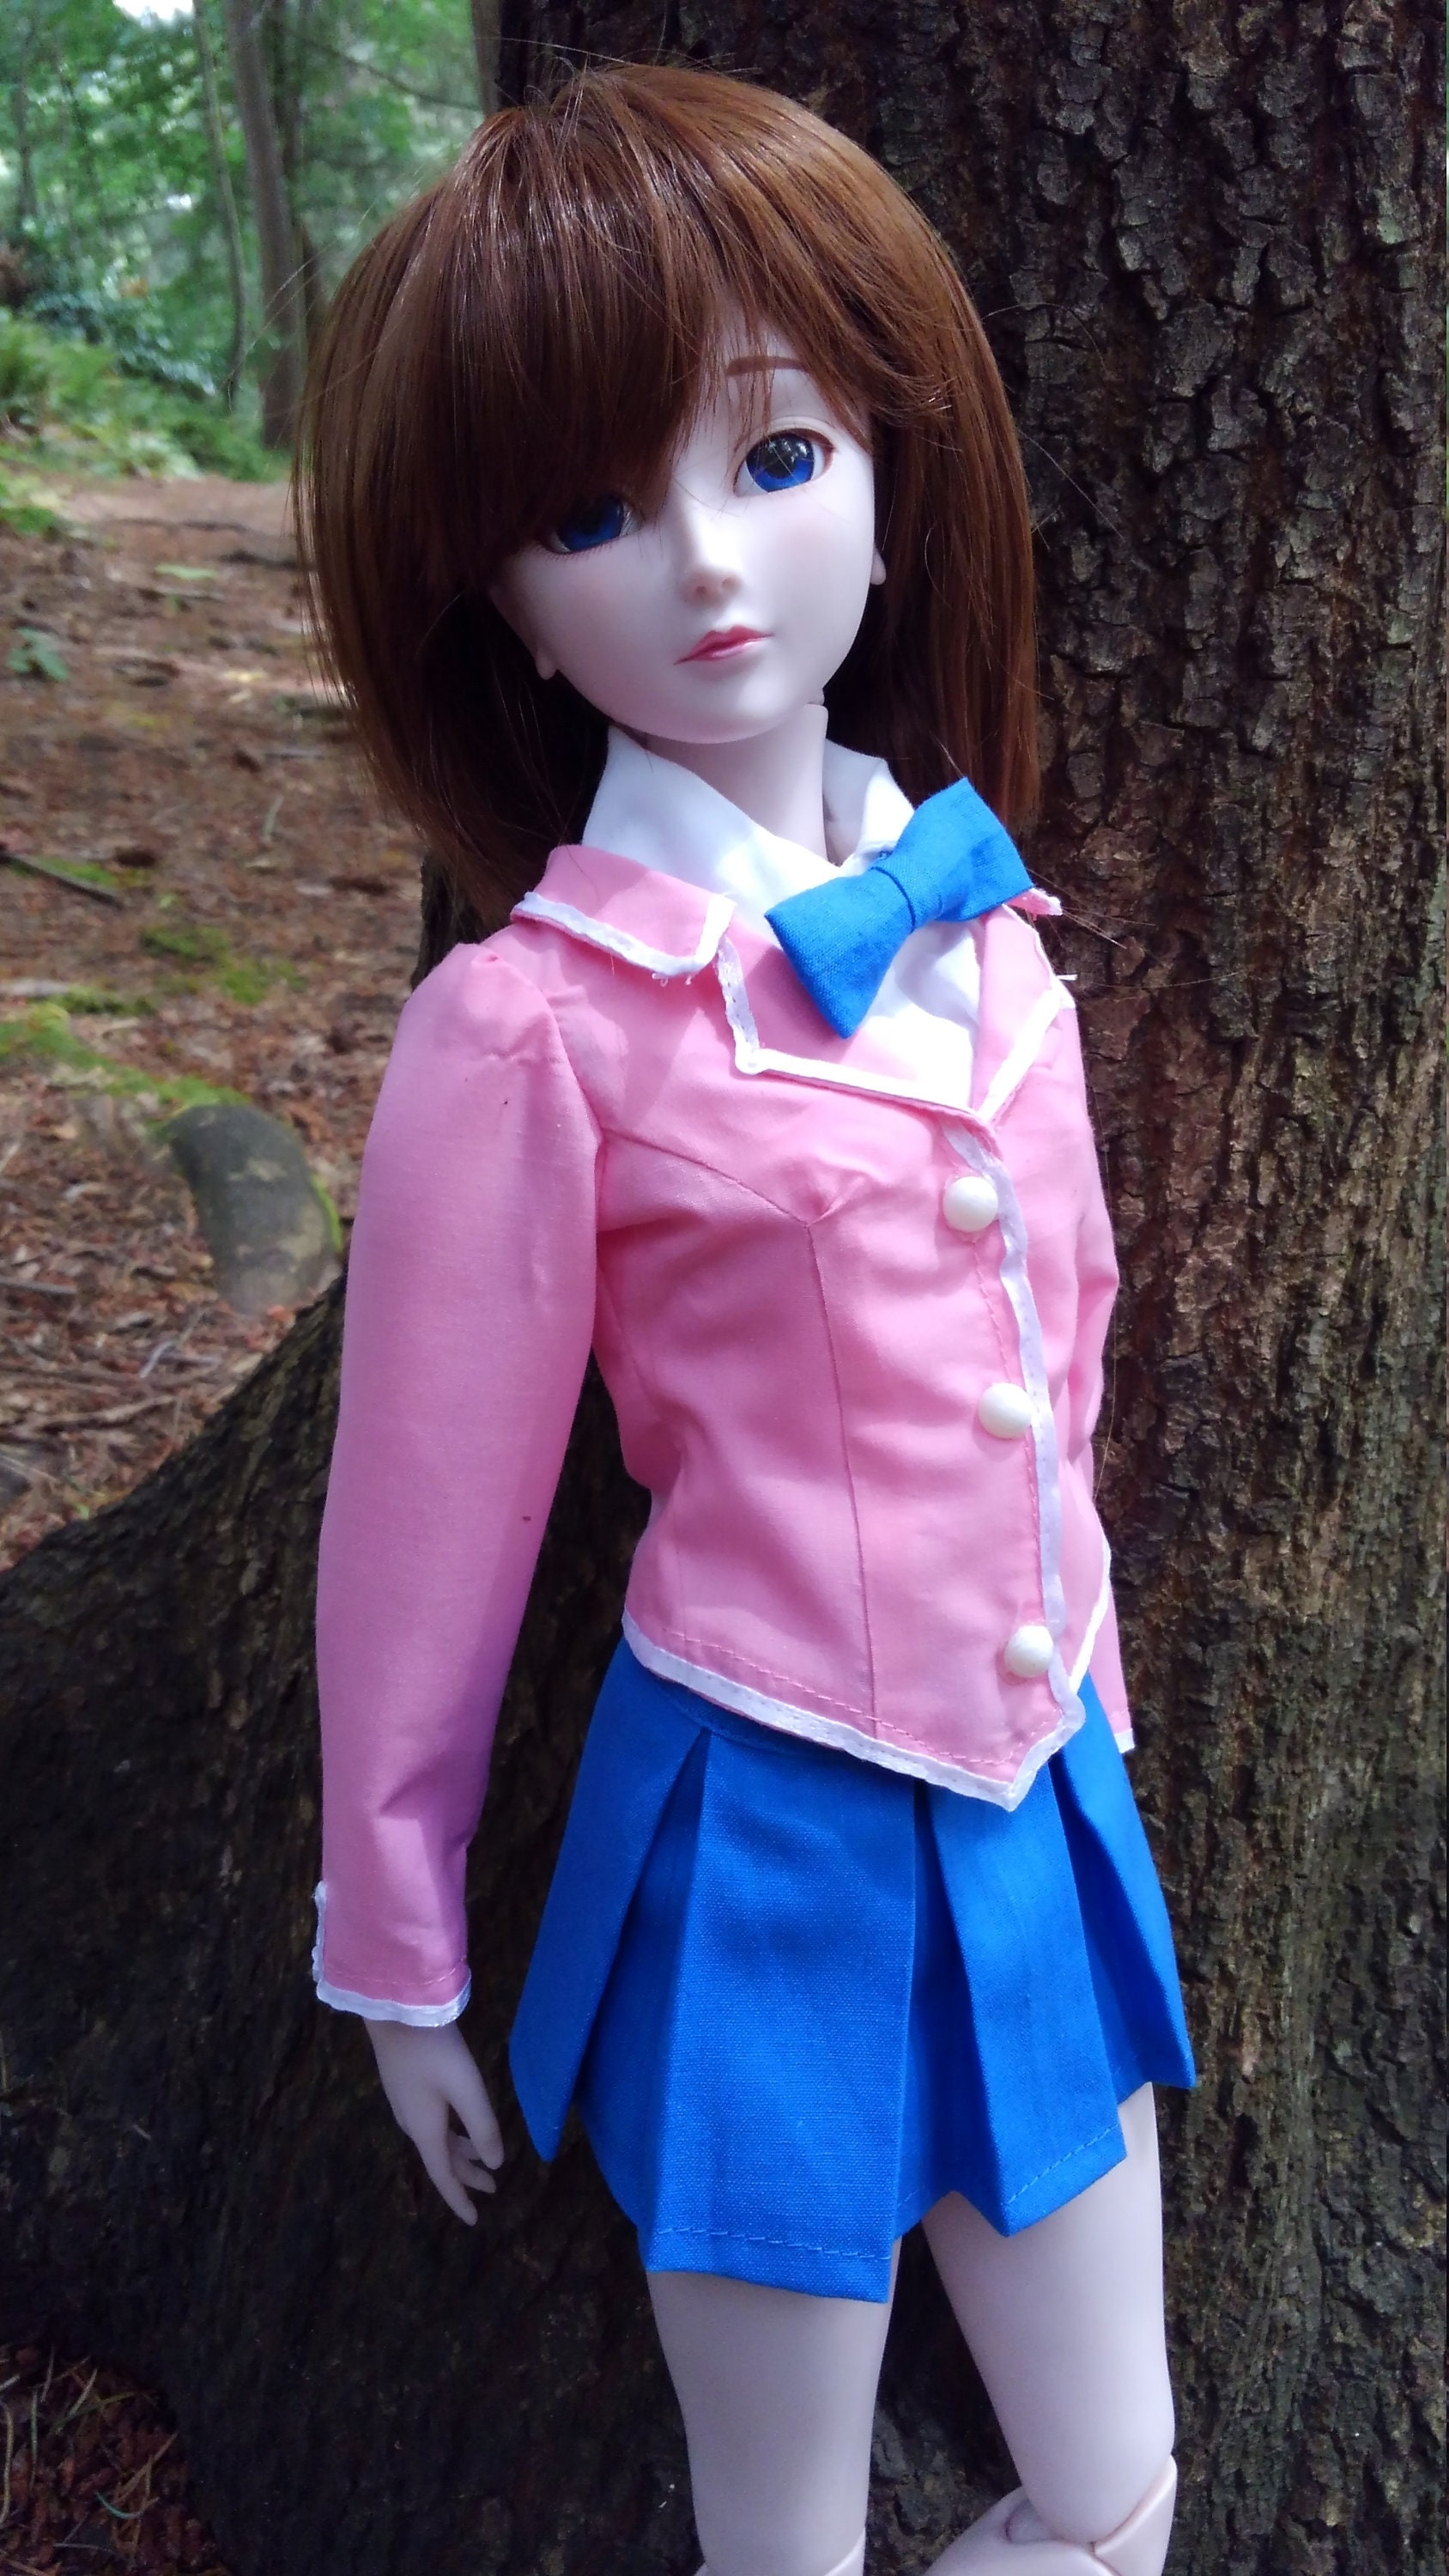 Girl\'s Domino High School Uniform for 1/3rd scale dolls. | Etsy